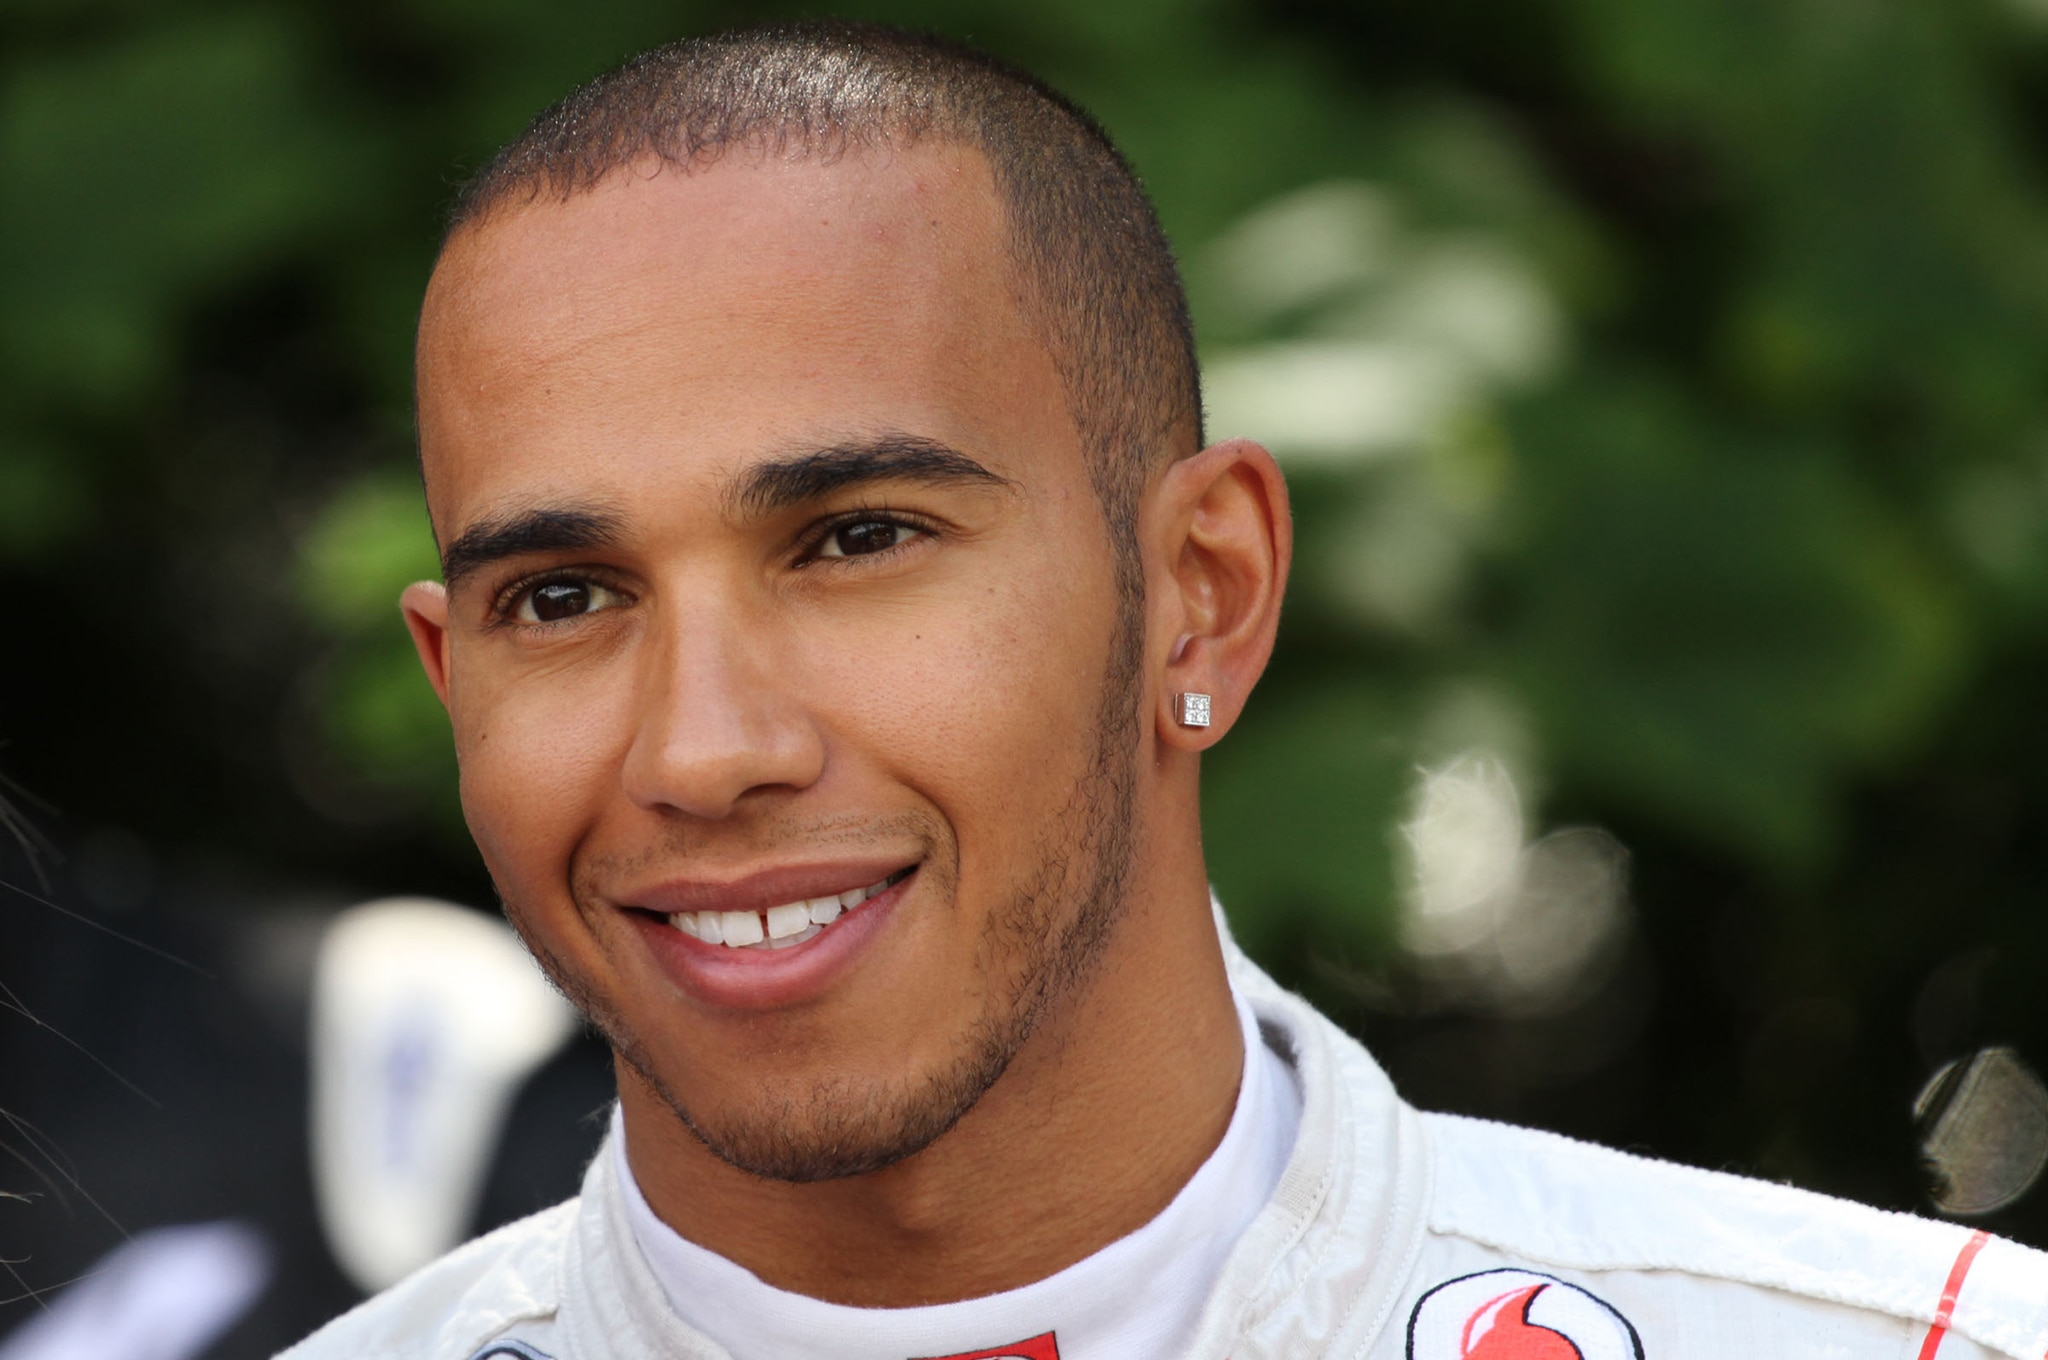 The 15 Highest Paid Formula 1 Drivers In 2015